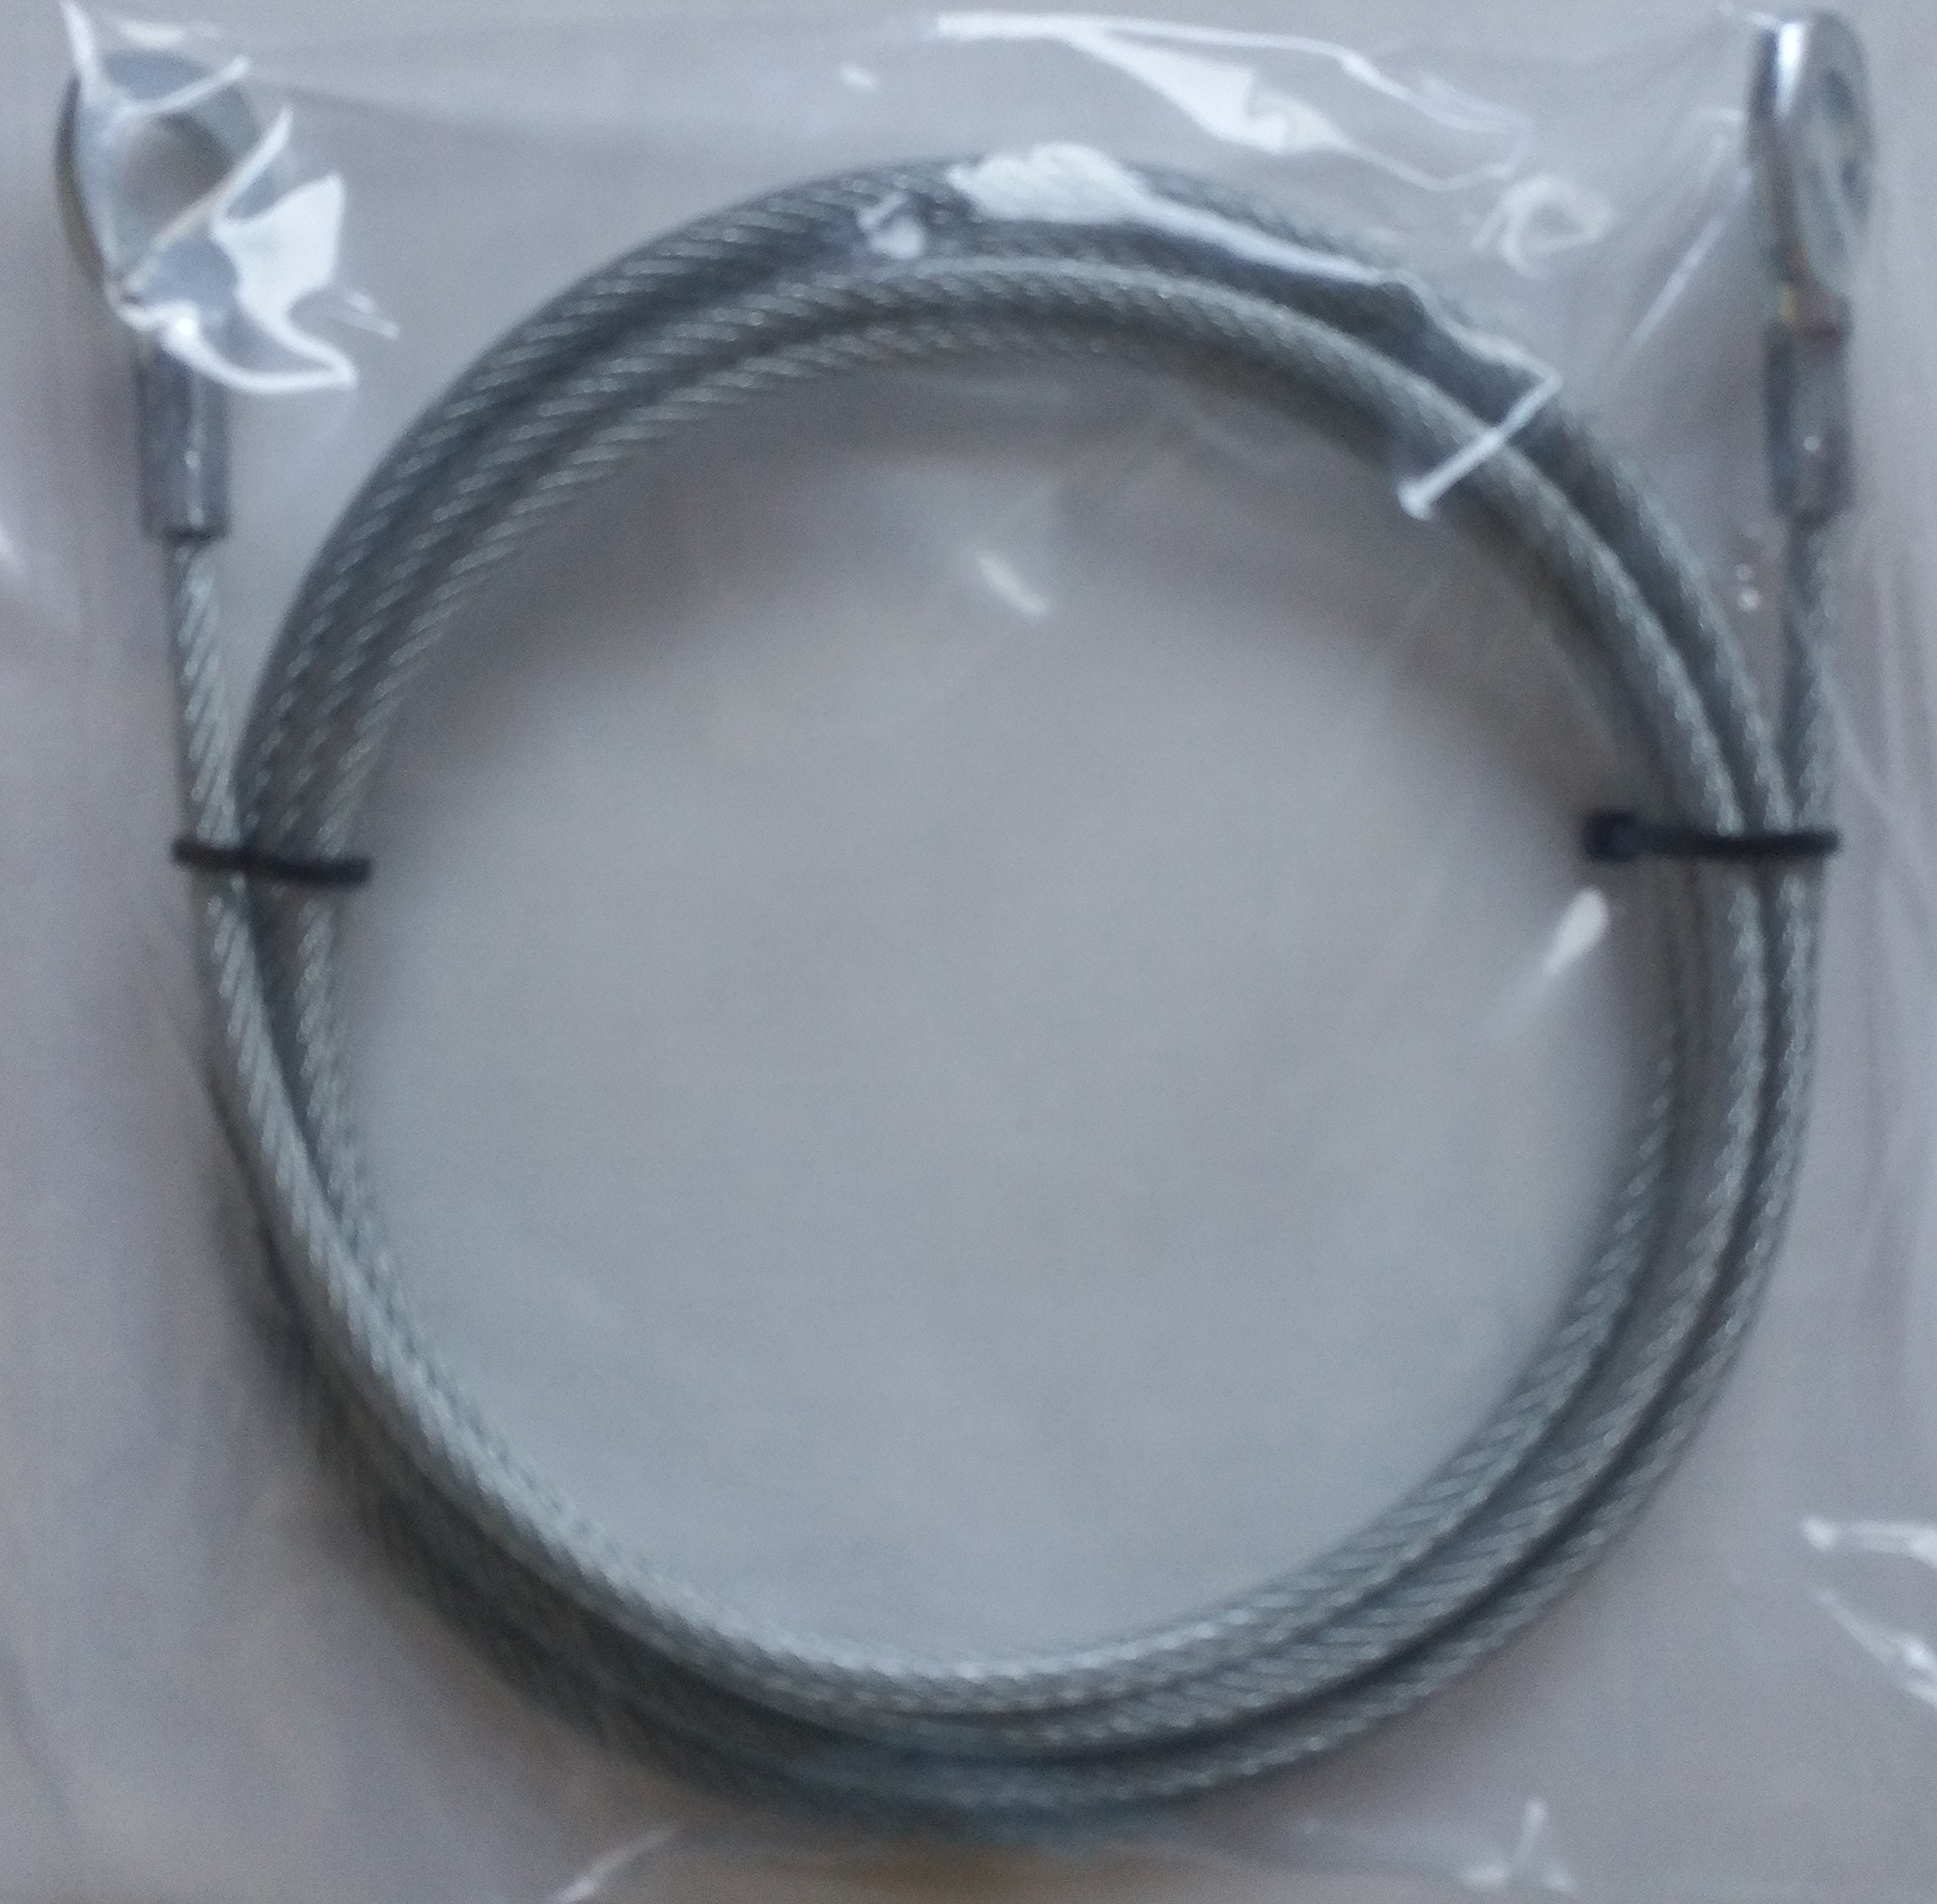 Total Gym Replacement Strong Steel Cable for Models 2000, 3000, and More by Total Gym Replacement